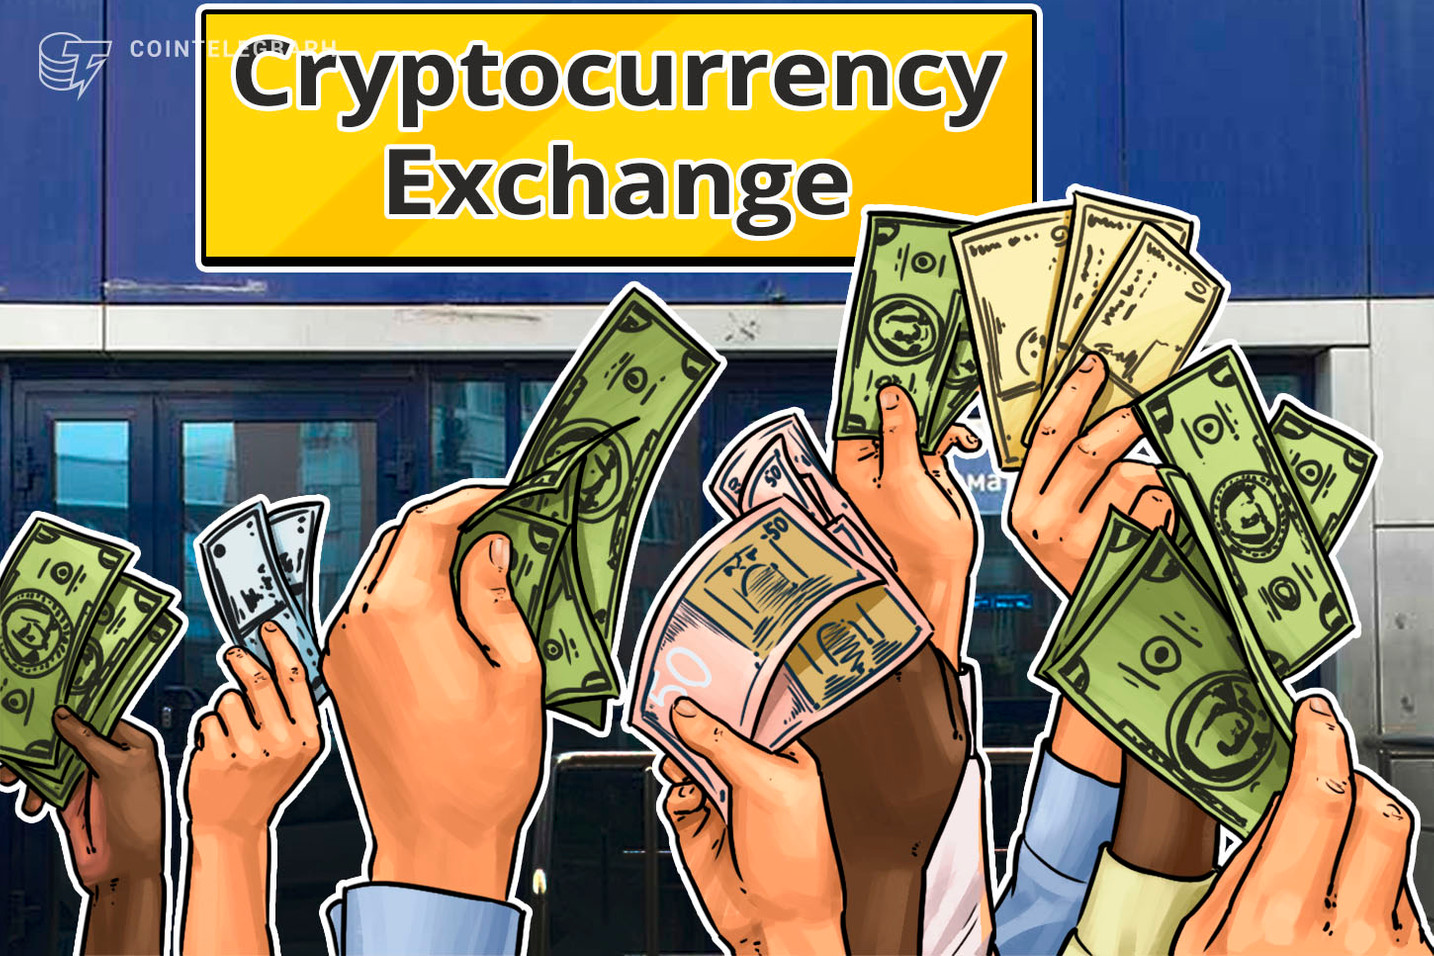 Report: Binance, OKEx Volumes Surge While Coinbase, Kraken See Over 70% Drops